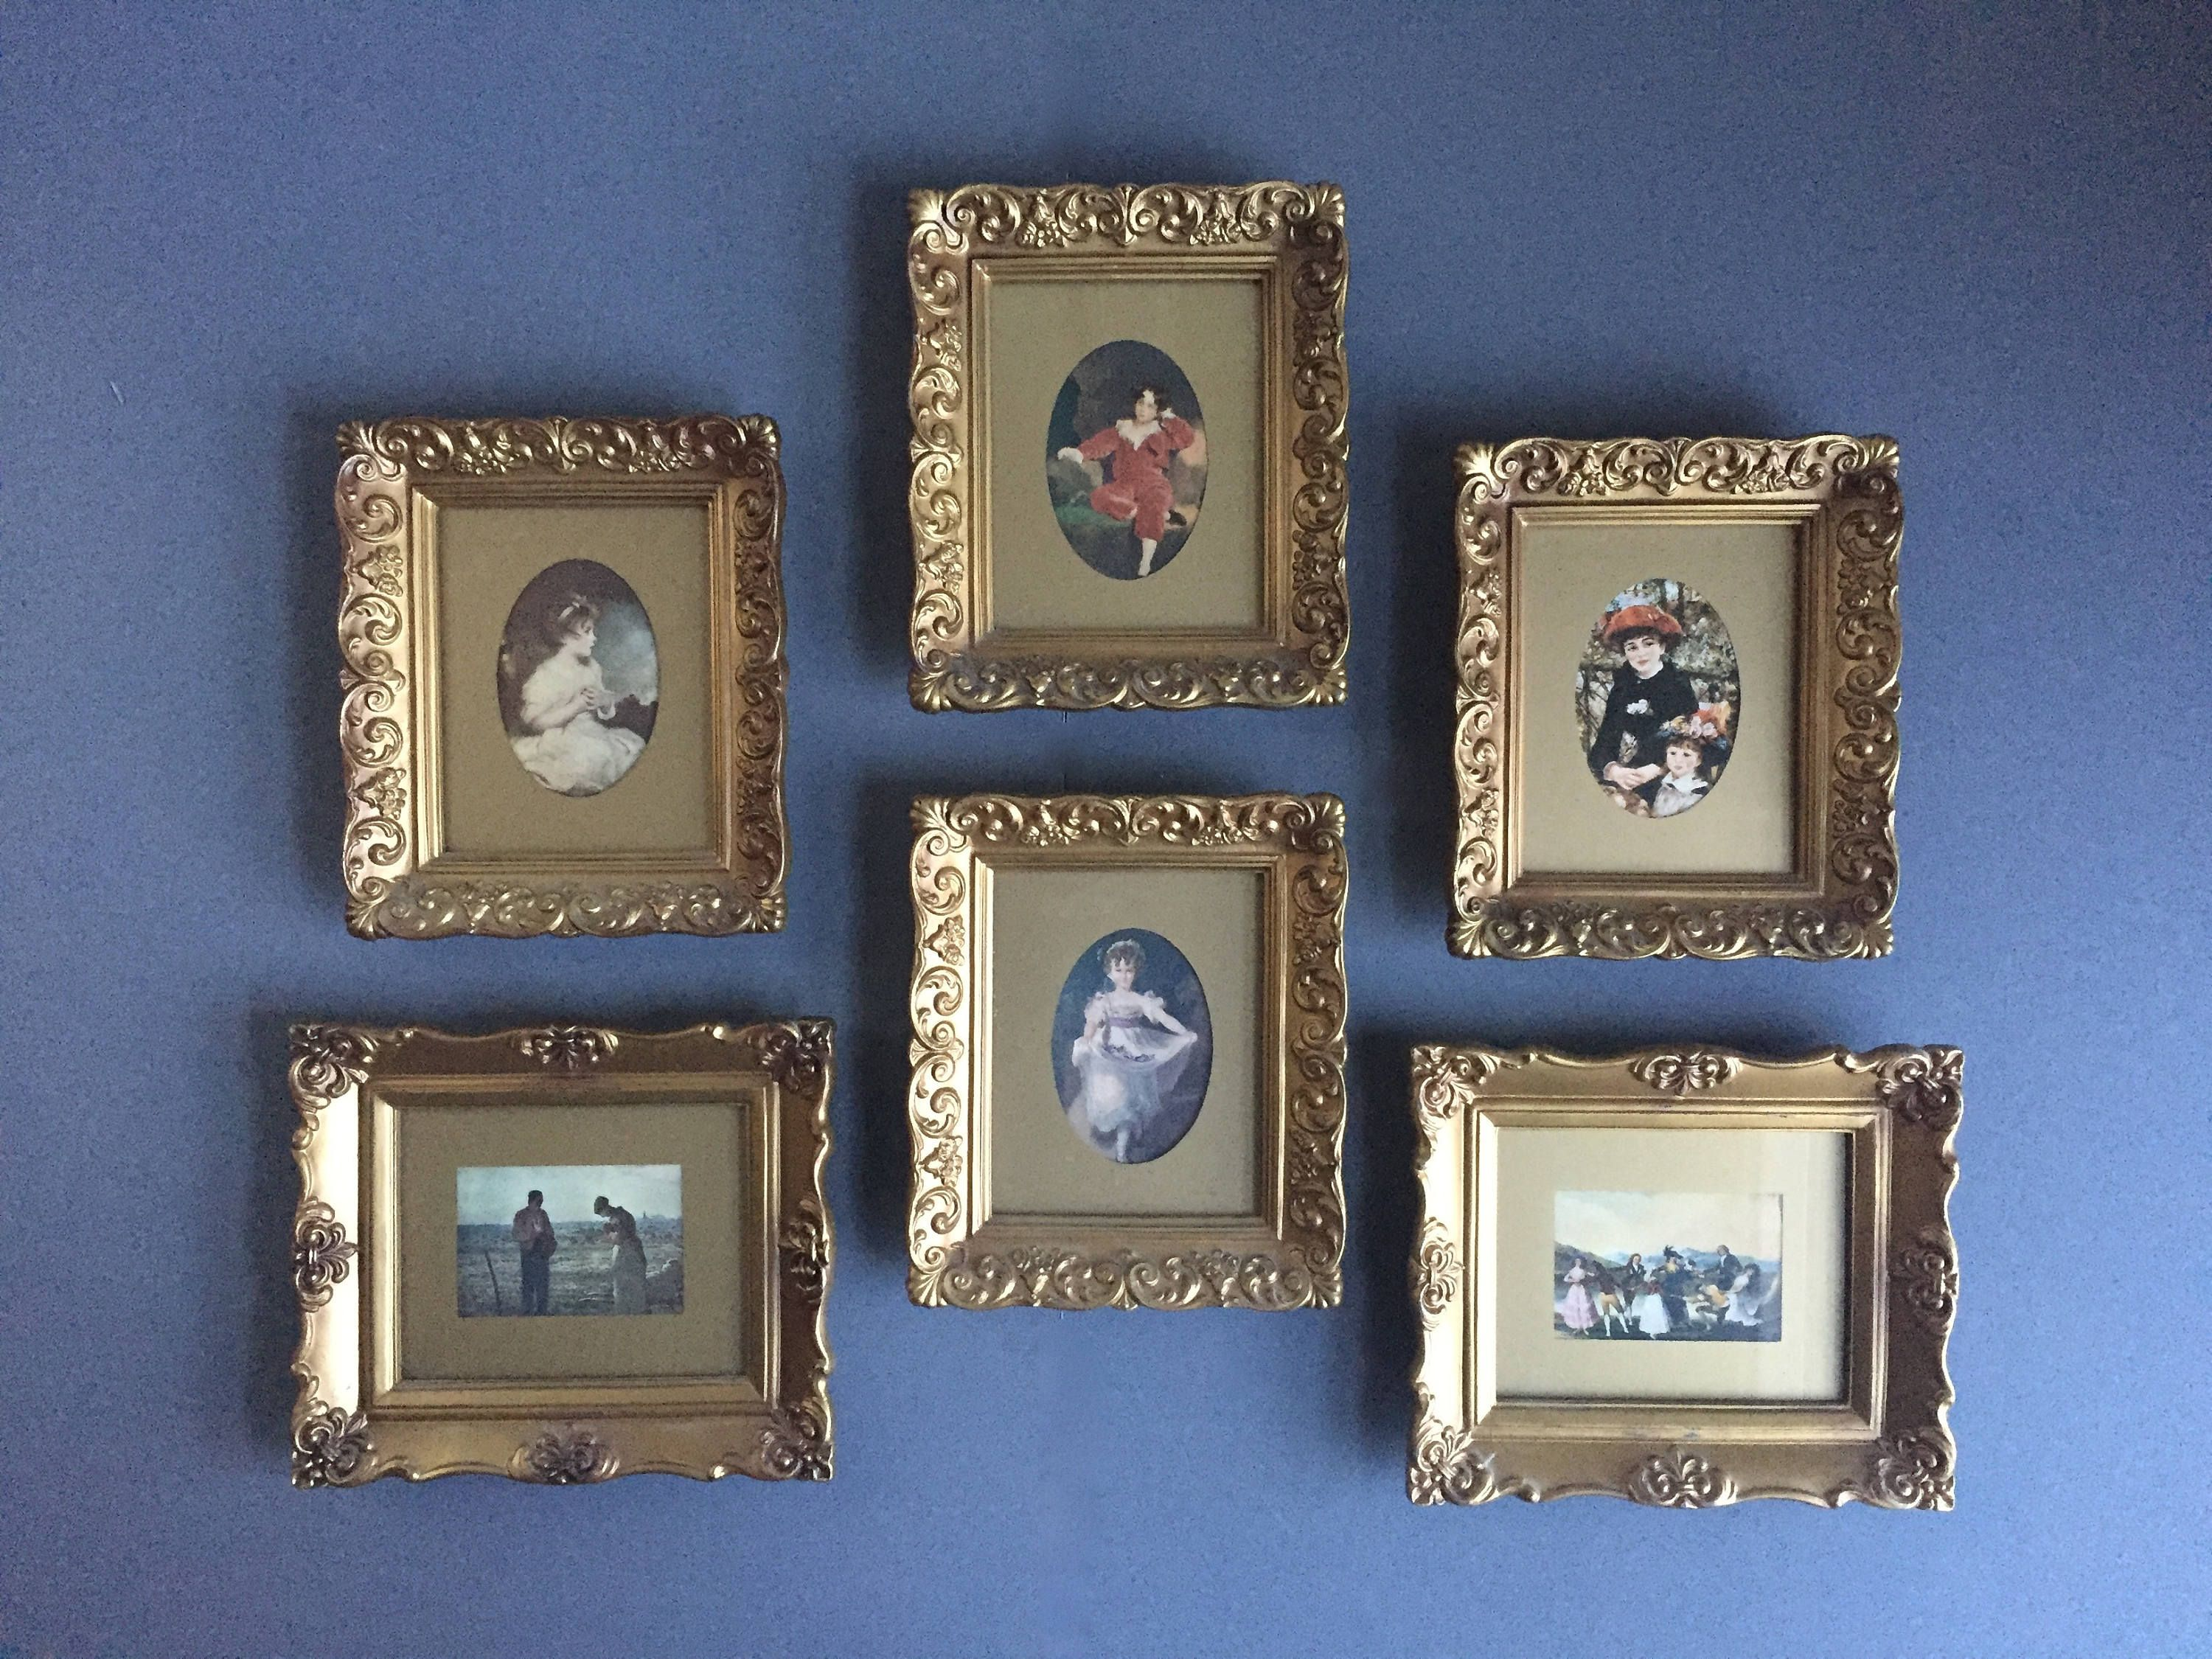 Small Framed Art Collection, Mini Masterpieces | Small framed art ...